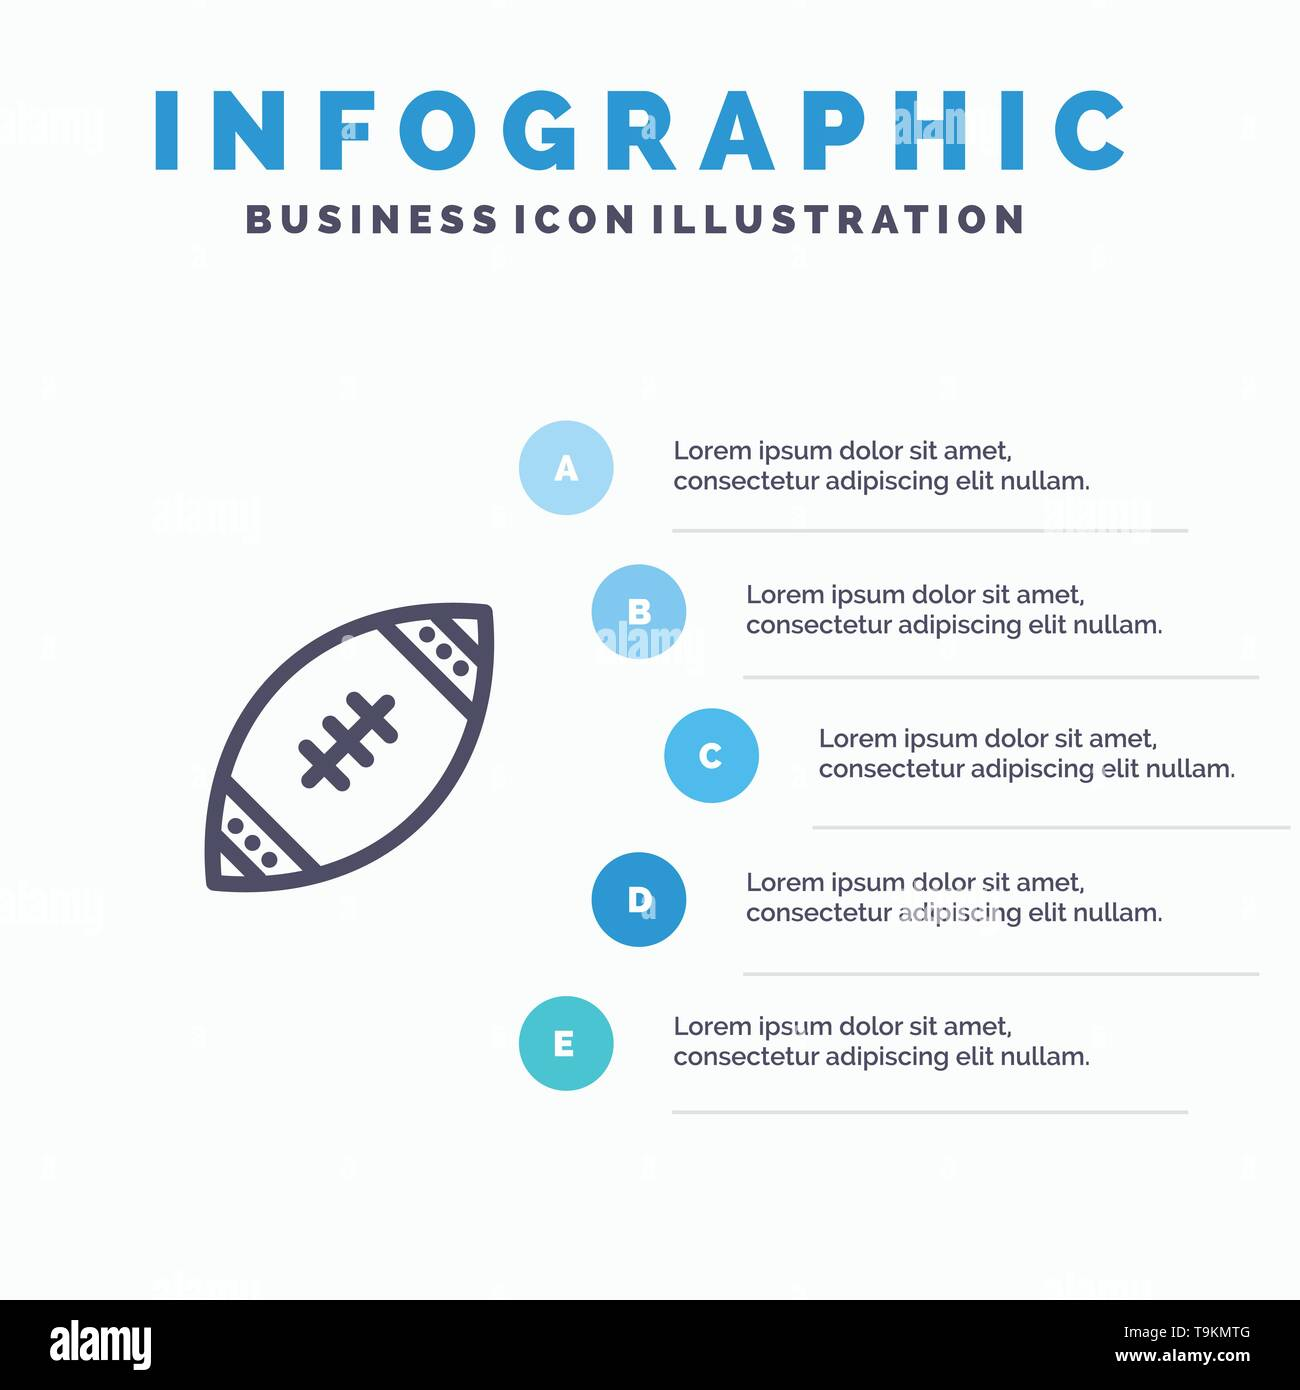 American, Ball, Football, Nfl, Rugby Line icon with 5 steps presentation infographics Background - Stock Image